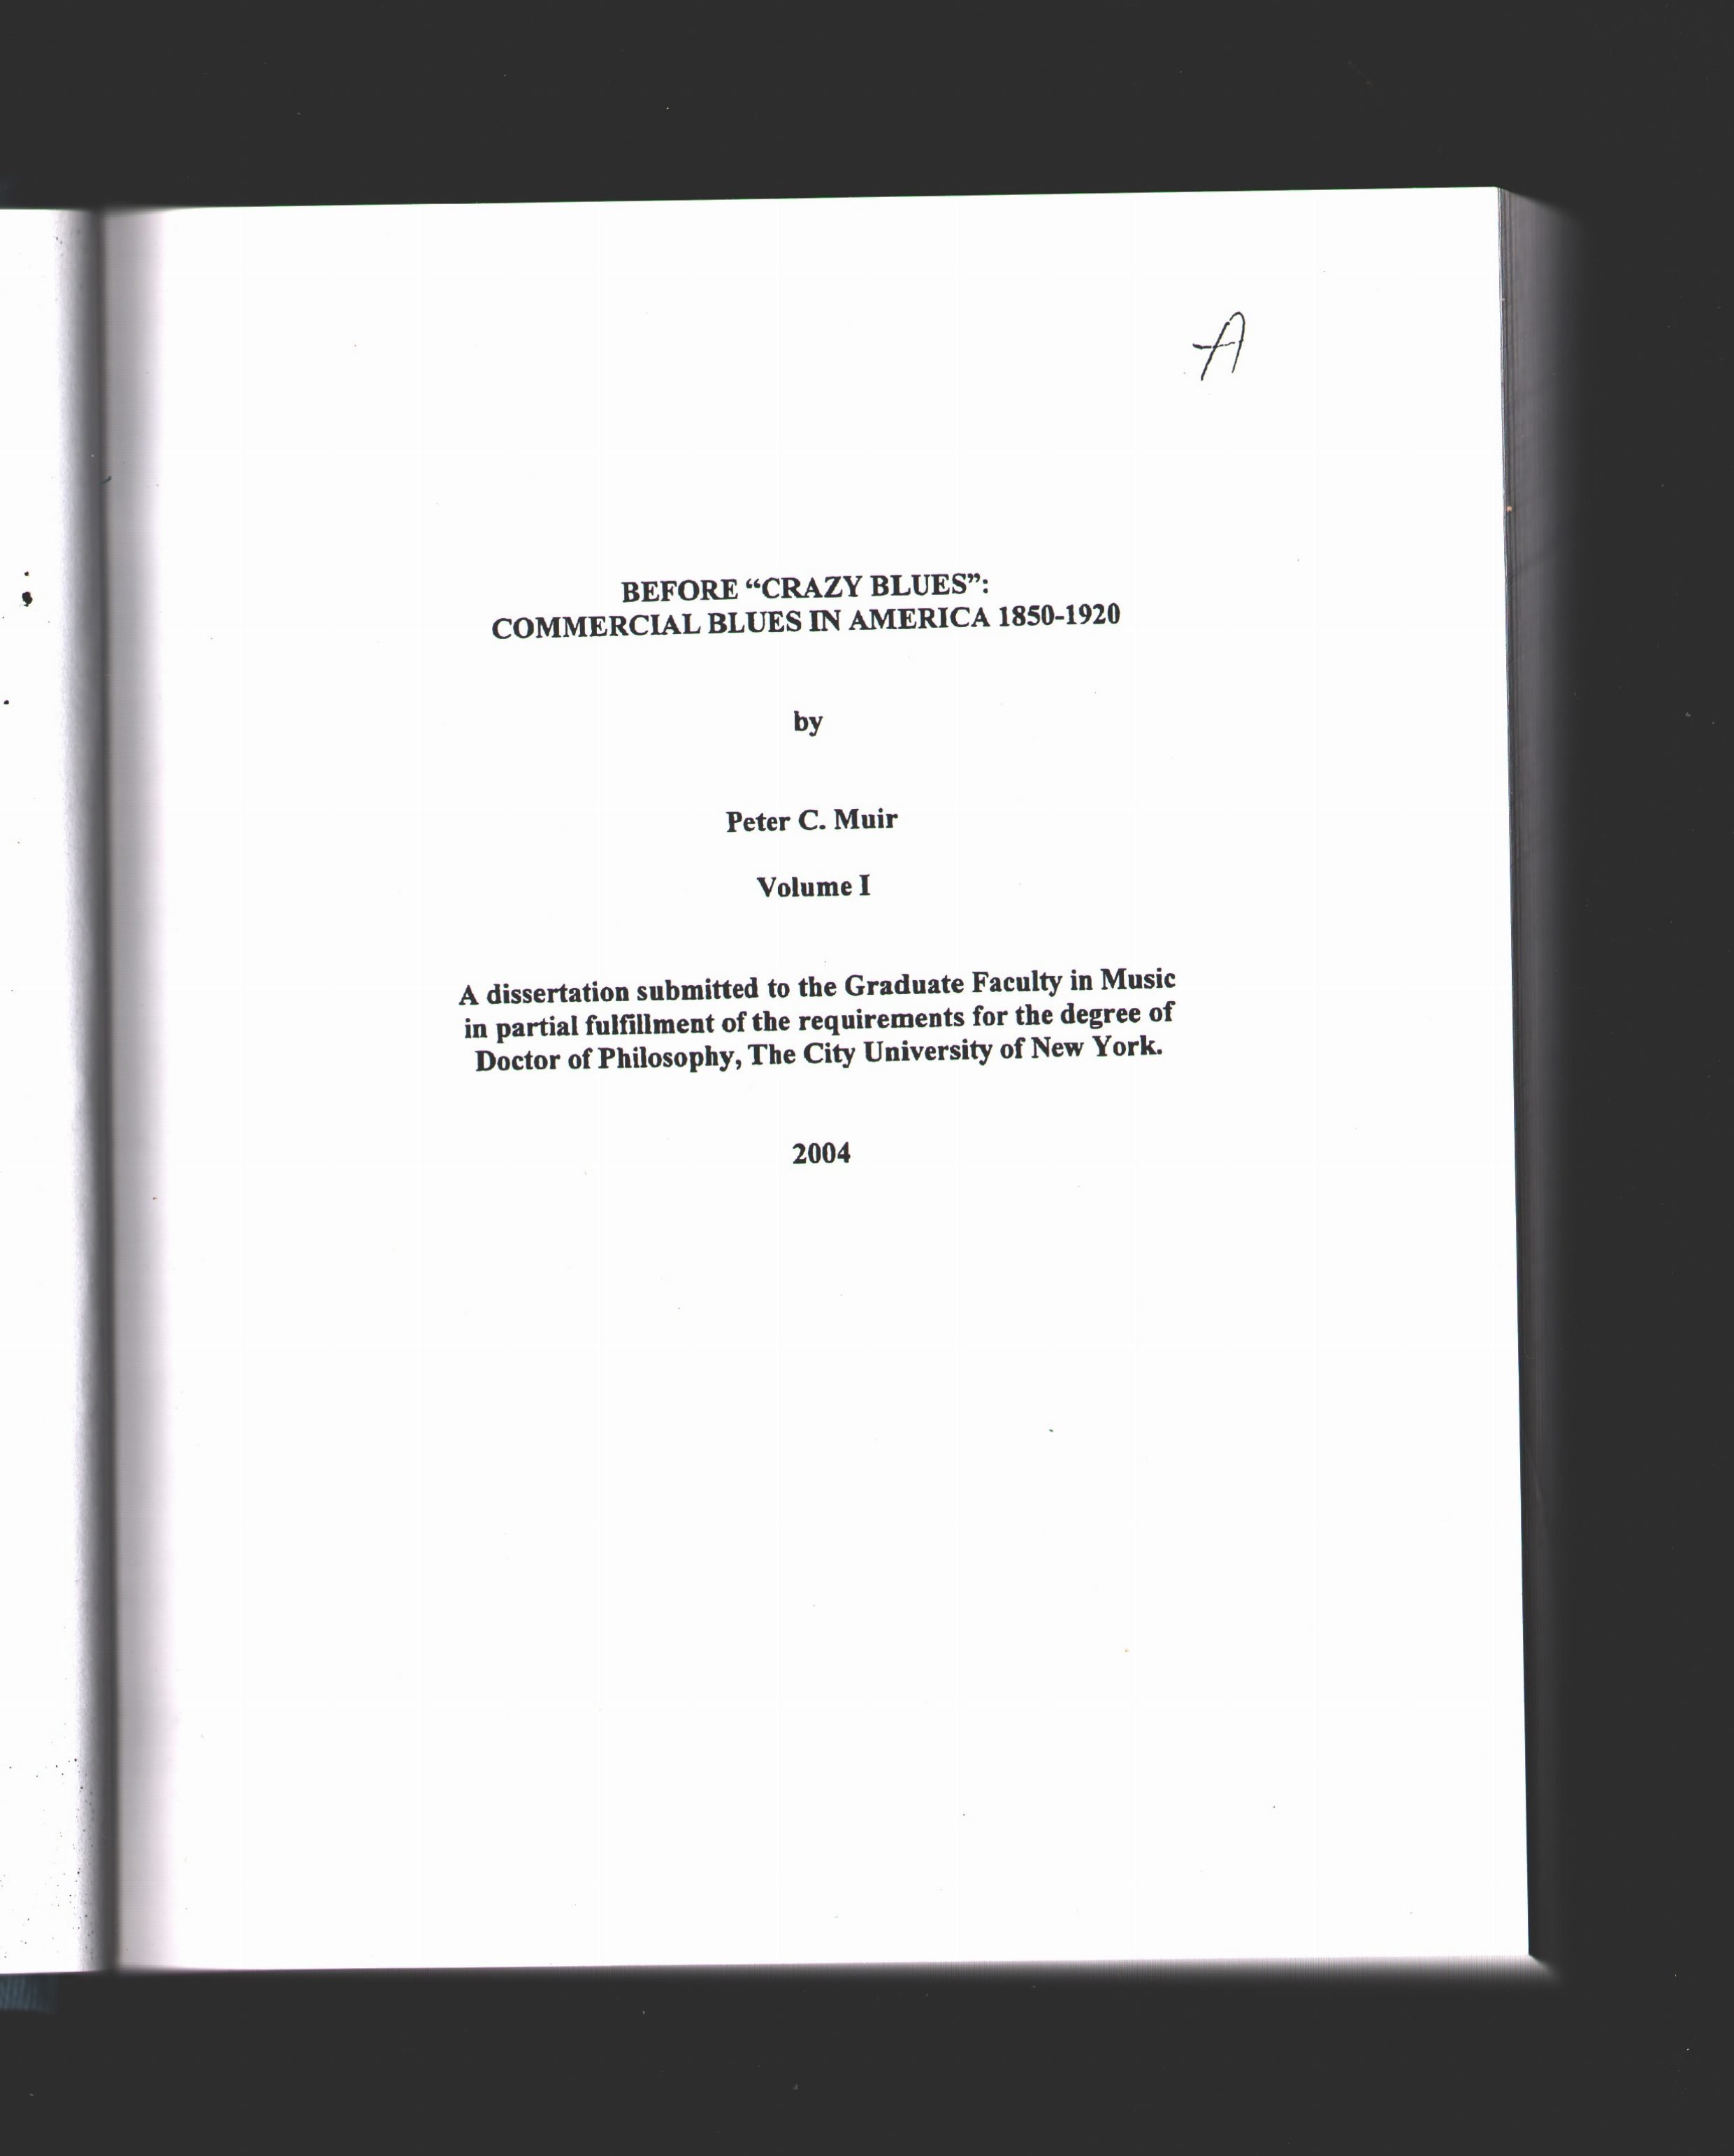 2004-phd-thesis-before-crazy-blues-p-muir